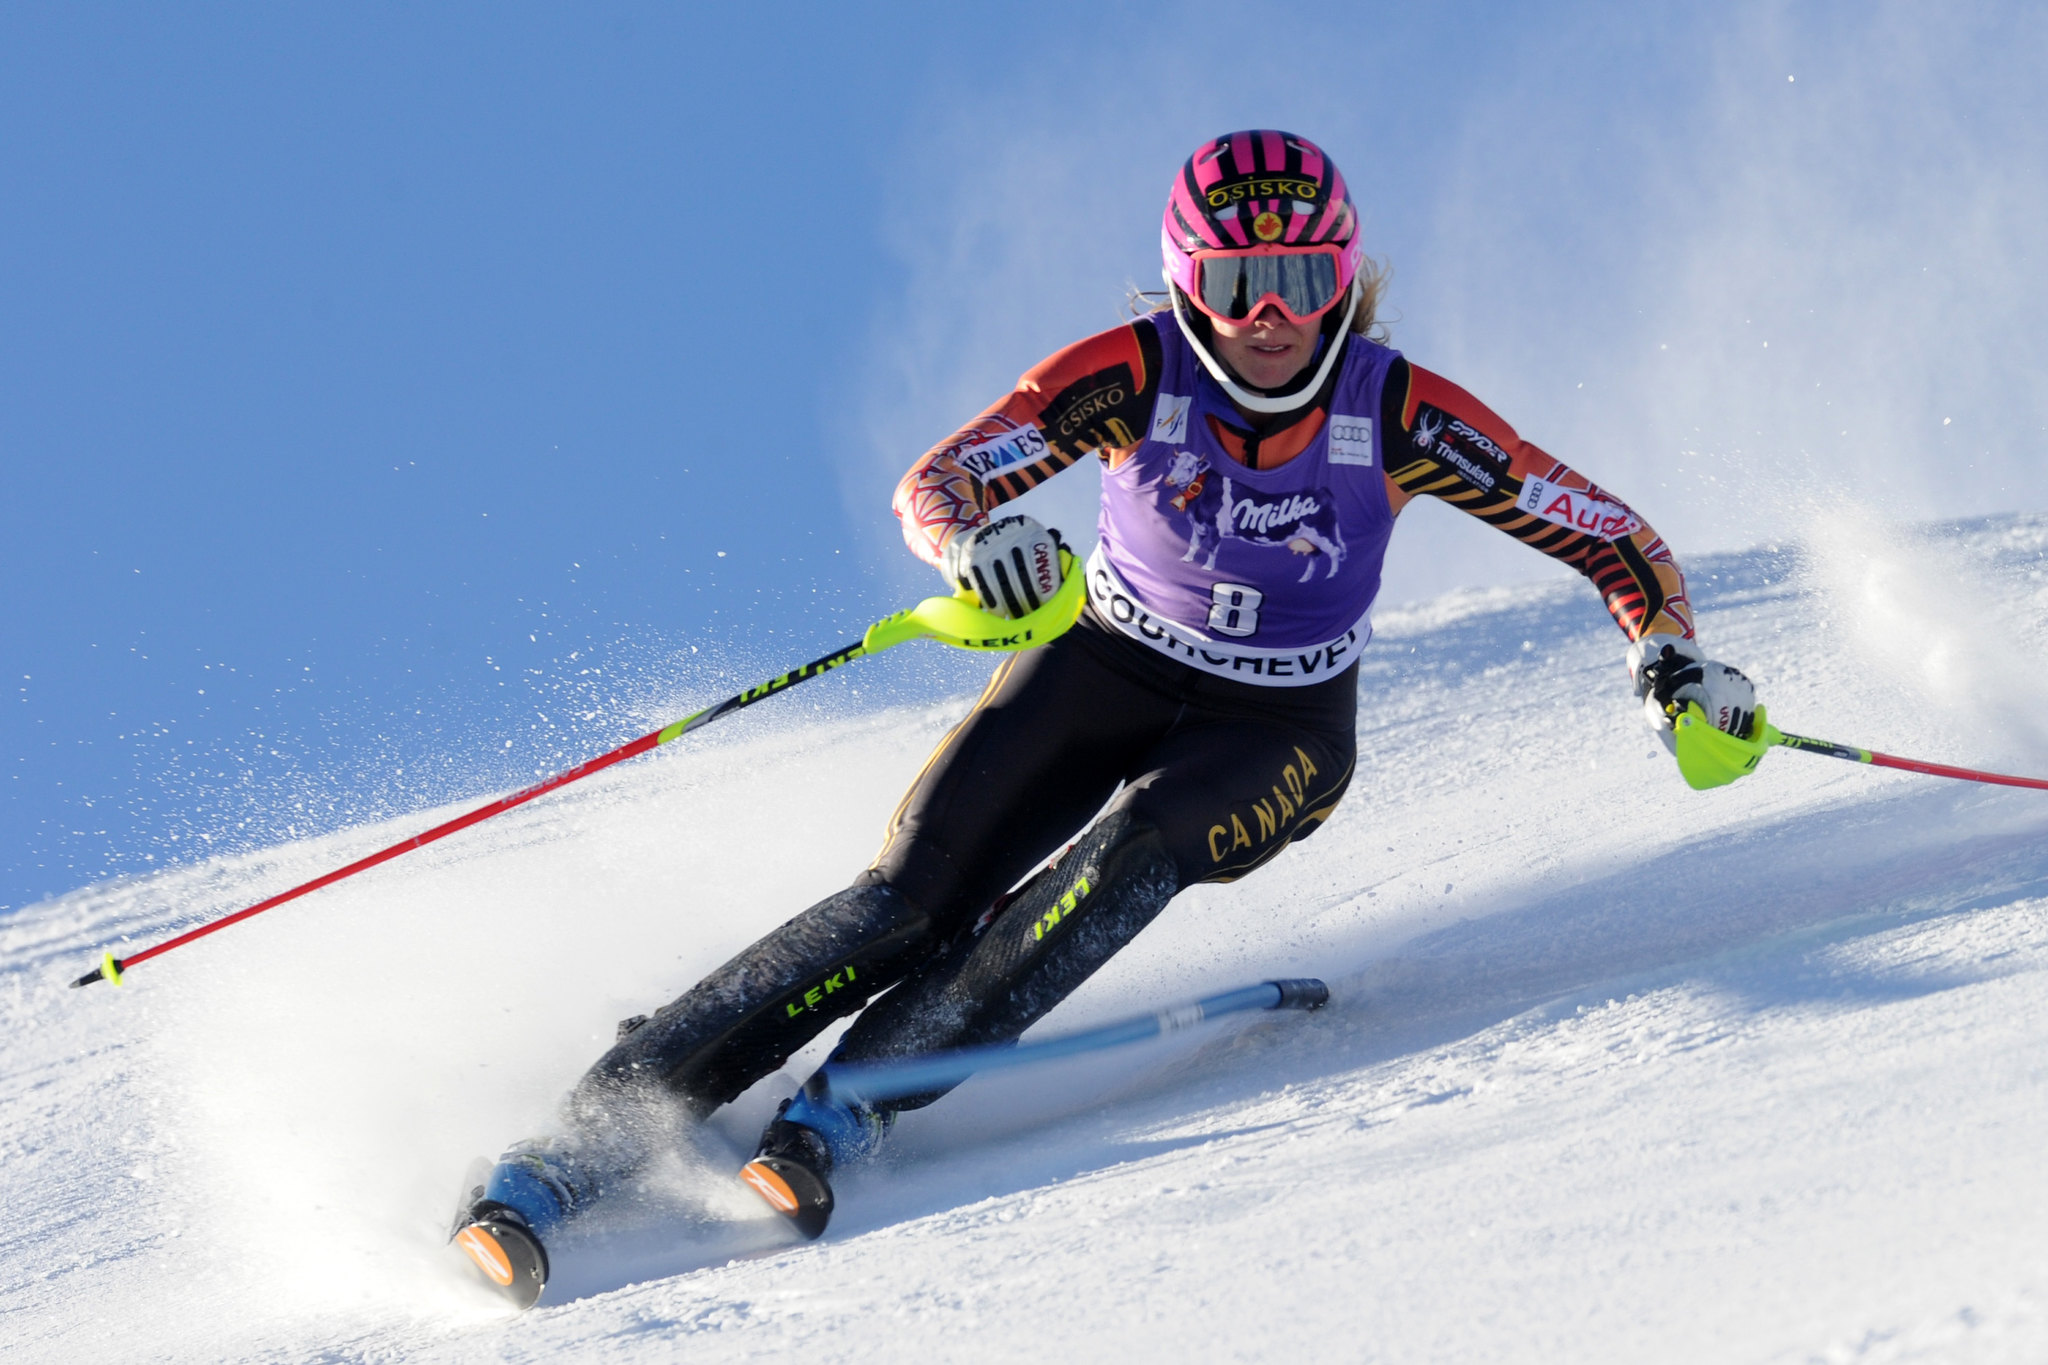 Gagnon in action during the slalom in Courchevel, FRA